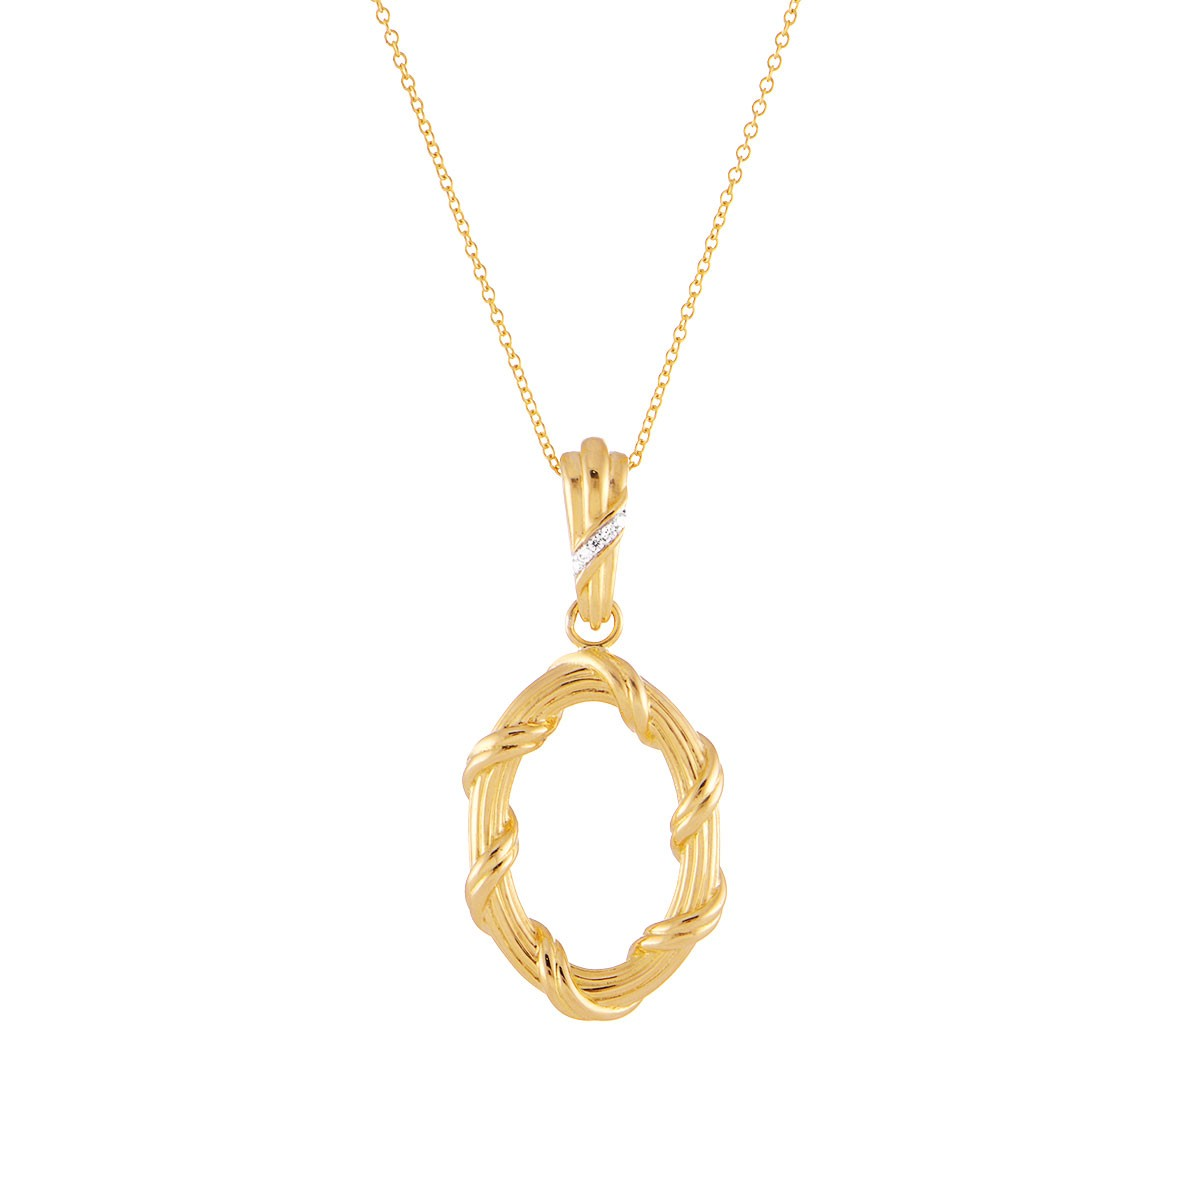 Heritage Diamond Oval Necklace in 18K yellow gold